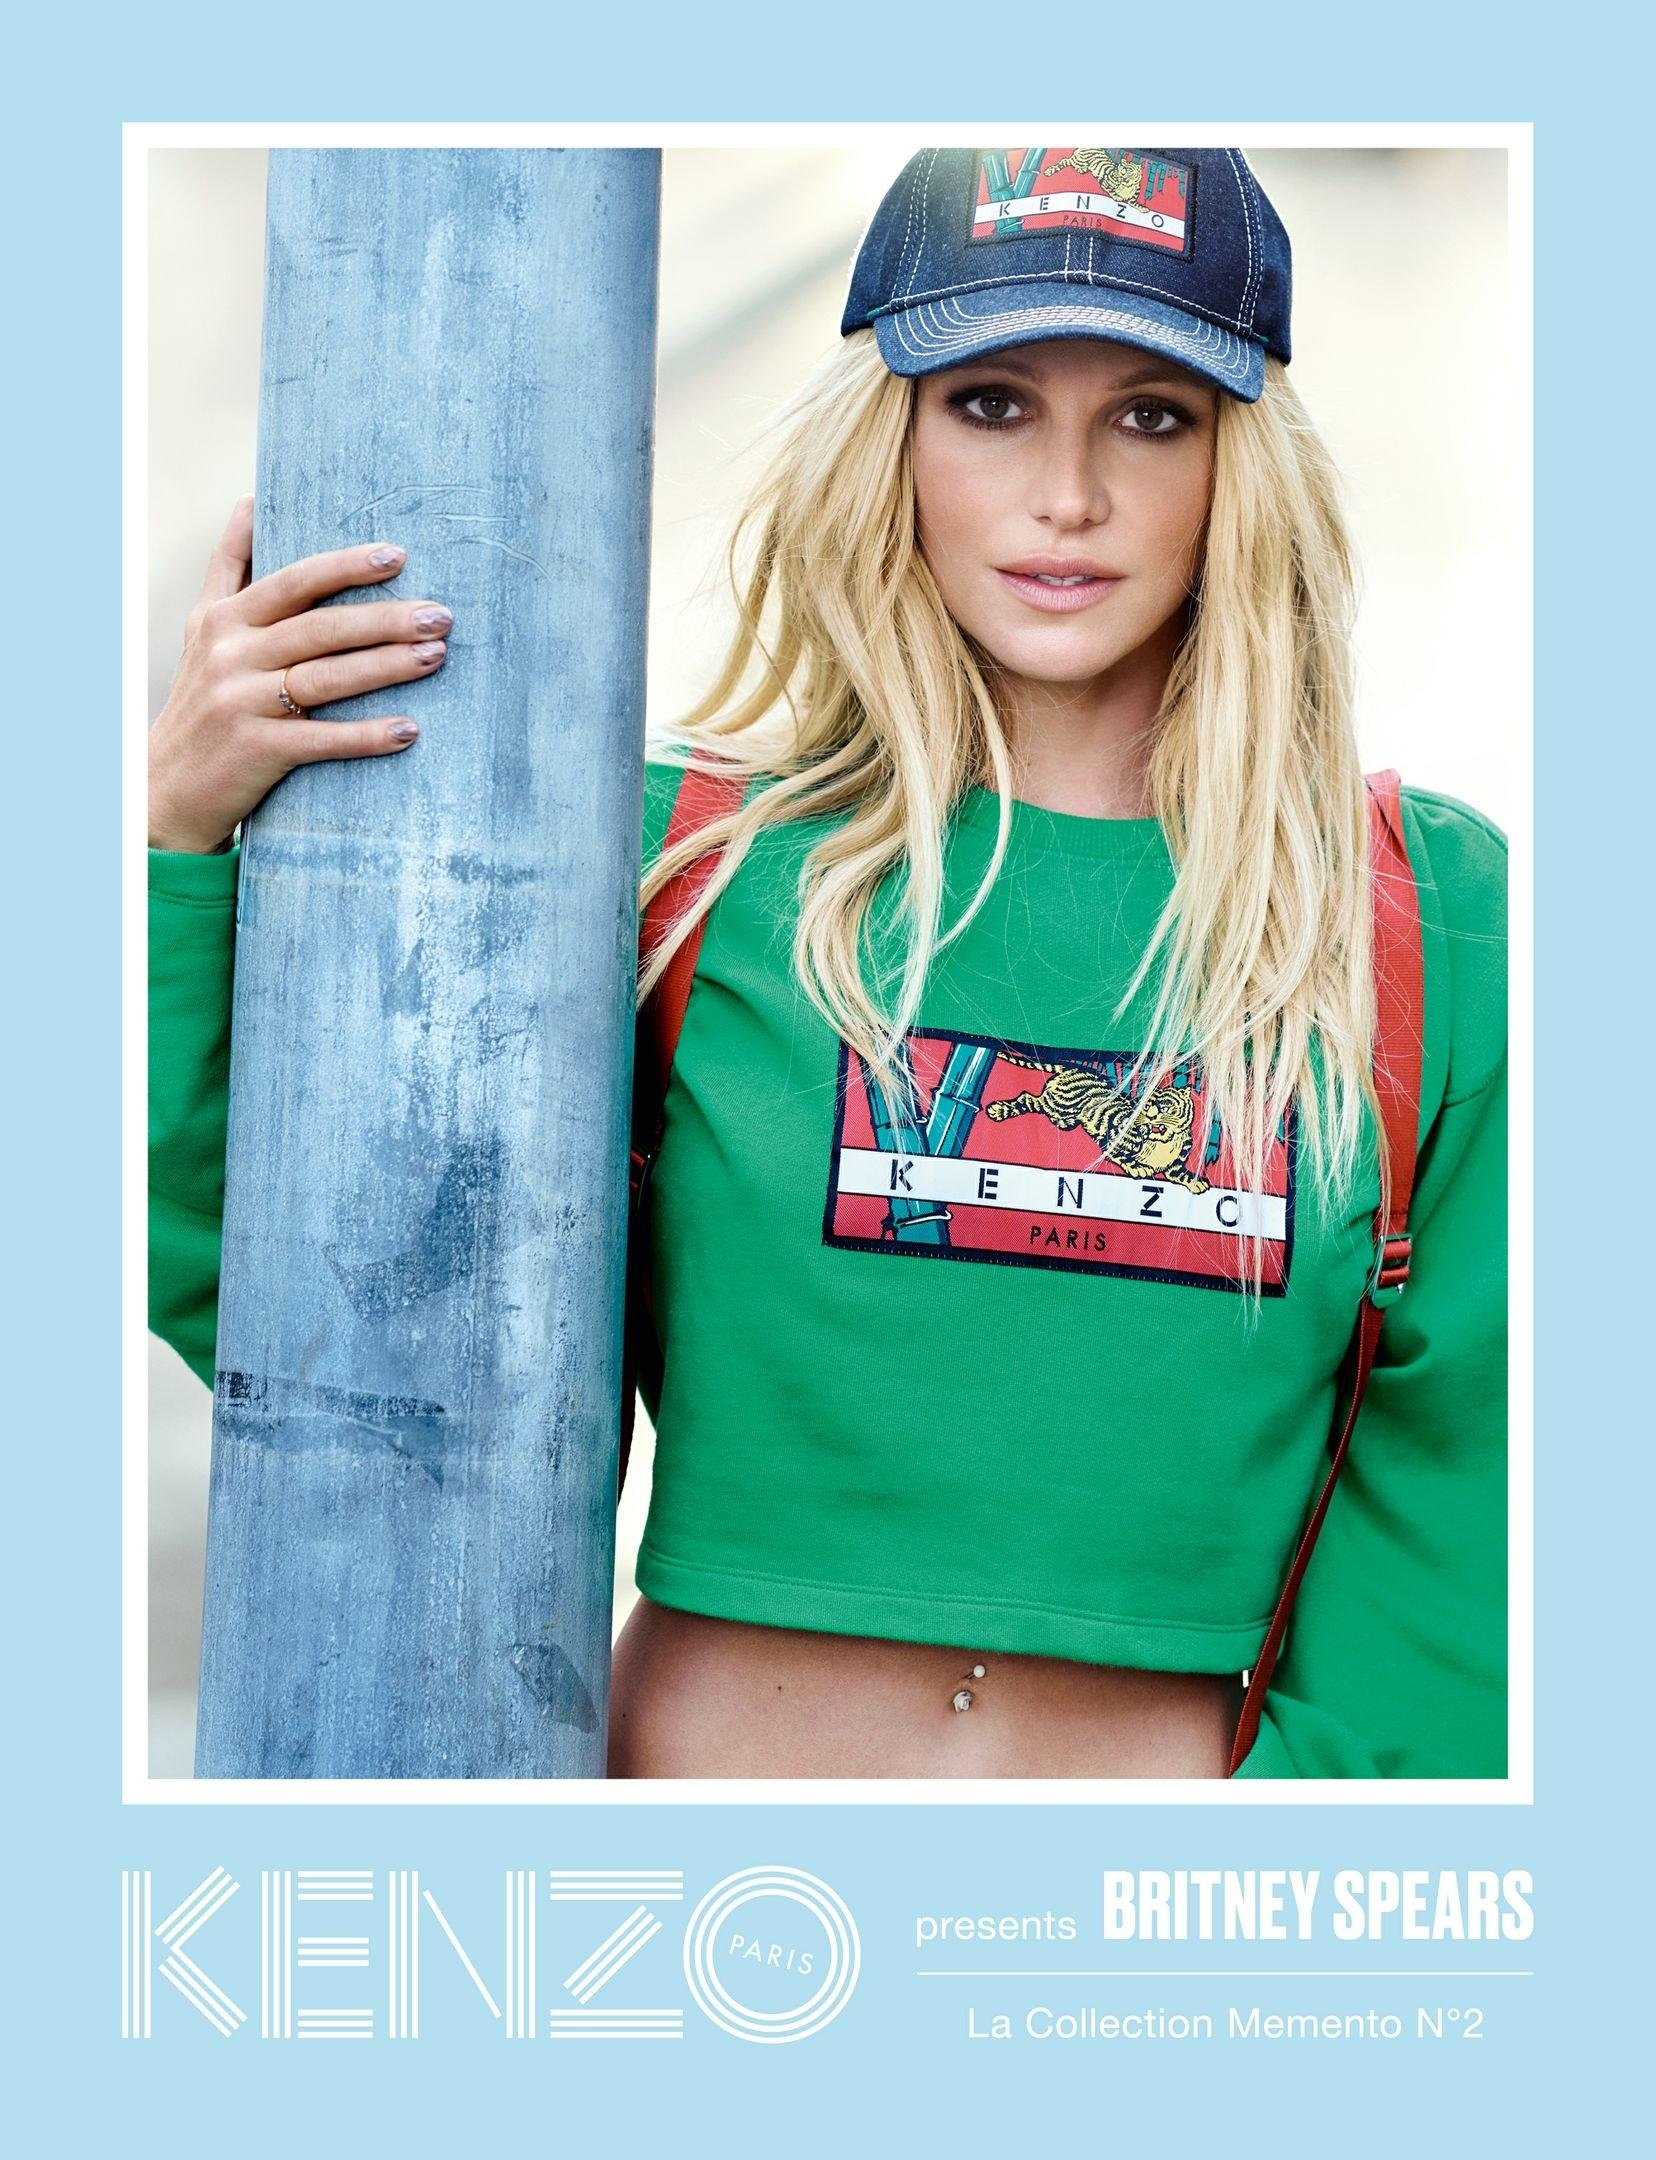 984df7a8df1 Britney Spears Landed a Kenzo Campaign